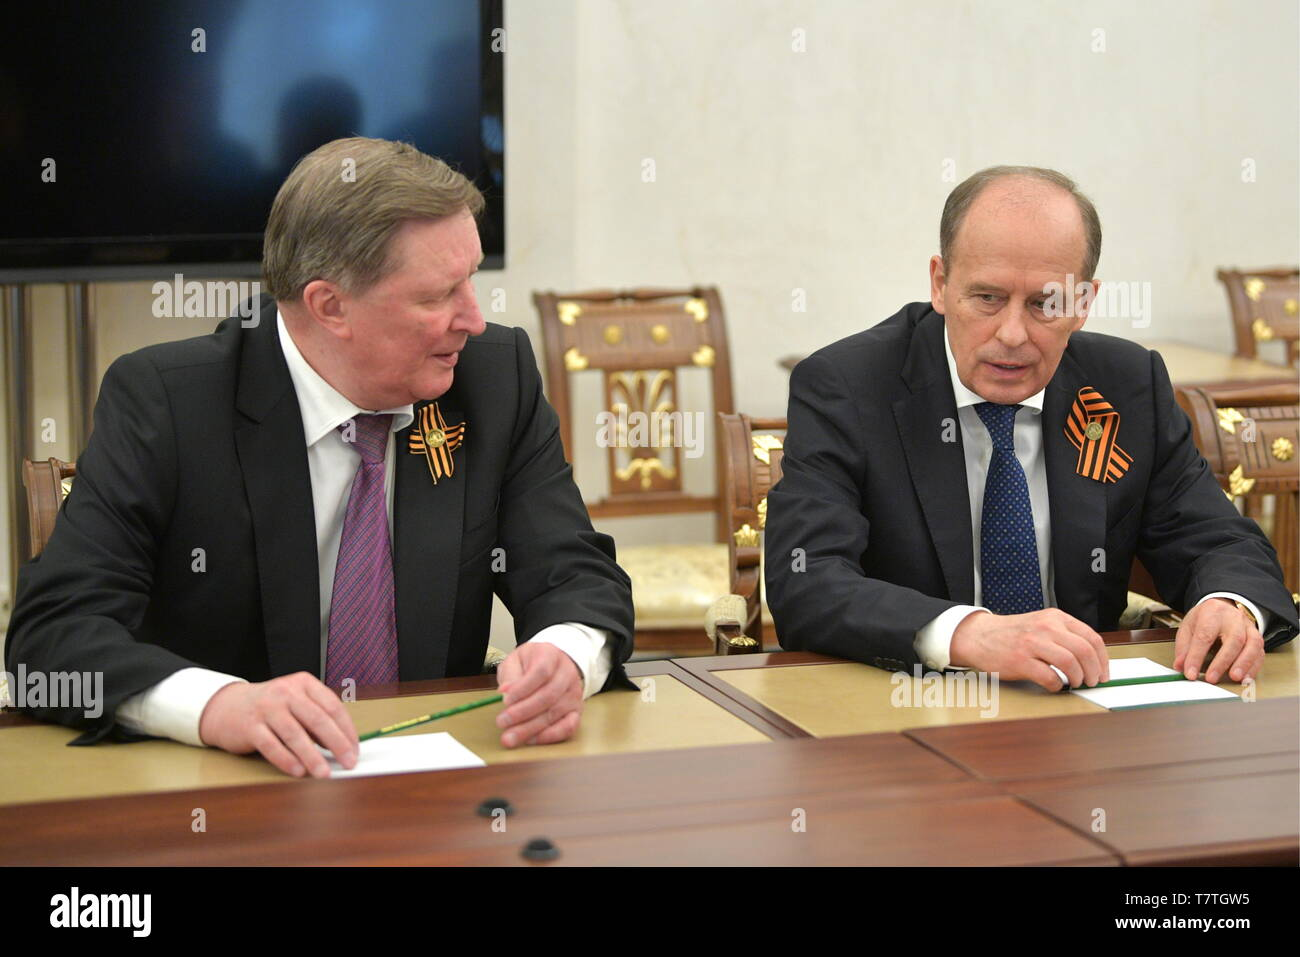 Moscow, Russia. 09th May, 2019. MOSCOW, RUSSIA - MAY 9, 2019: Sergei Ivanov (L), Russia's Special Presidential Envoy for Environmental Protection, Ecology and Transport, and Alexander Bortnikov, Head of the Russian Federal Security Service, ahead of a meeting between Russia's President Vladimir Putin and permanent members of the Russian Security Council at the Moscow Kremlin. Alexei Druzhinin/Russian Presidential Press and Information Office/TASS Credit: ITAR-TASS News Agency/Alamy Live News - Stock Image